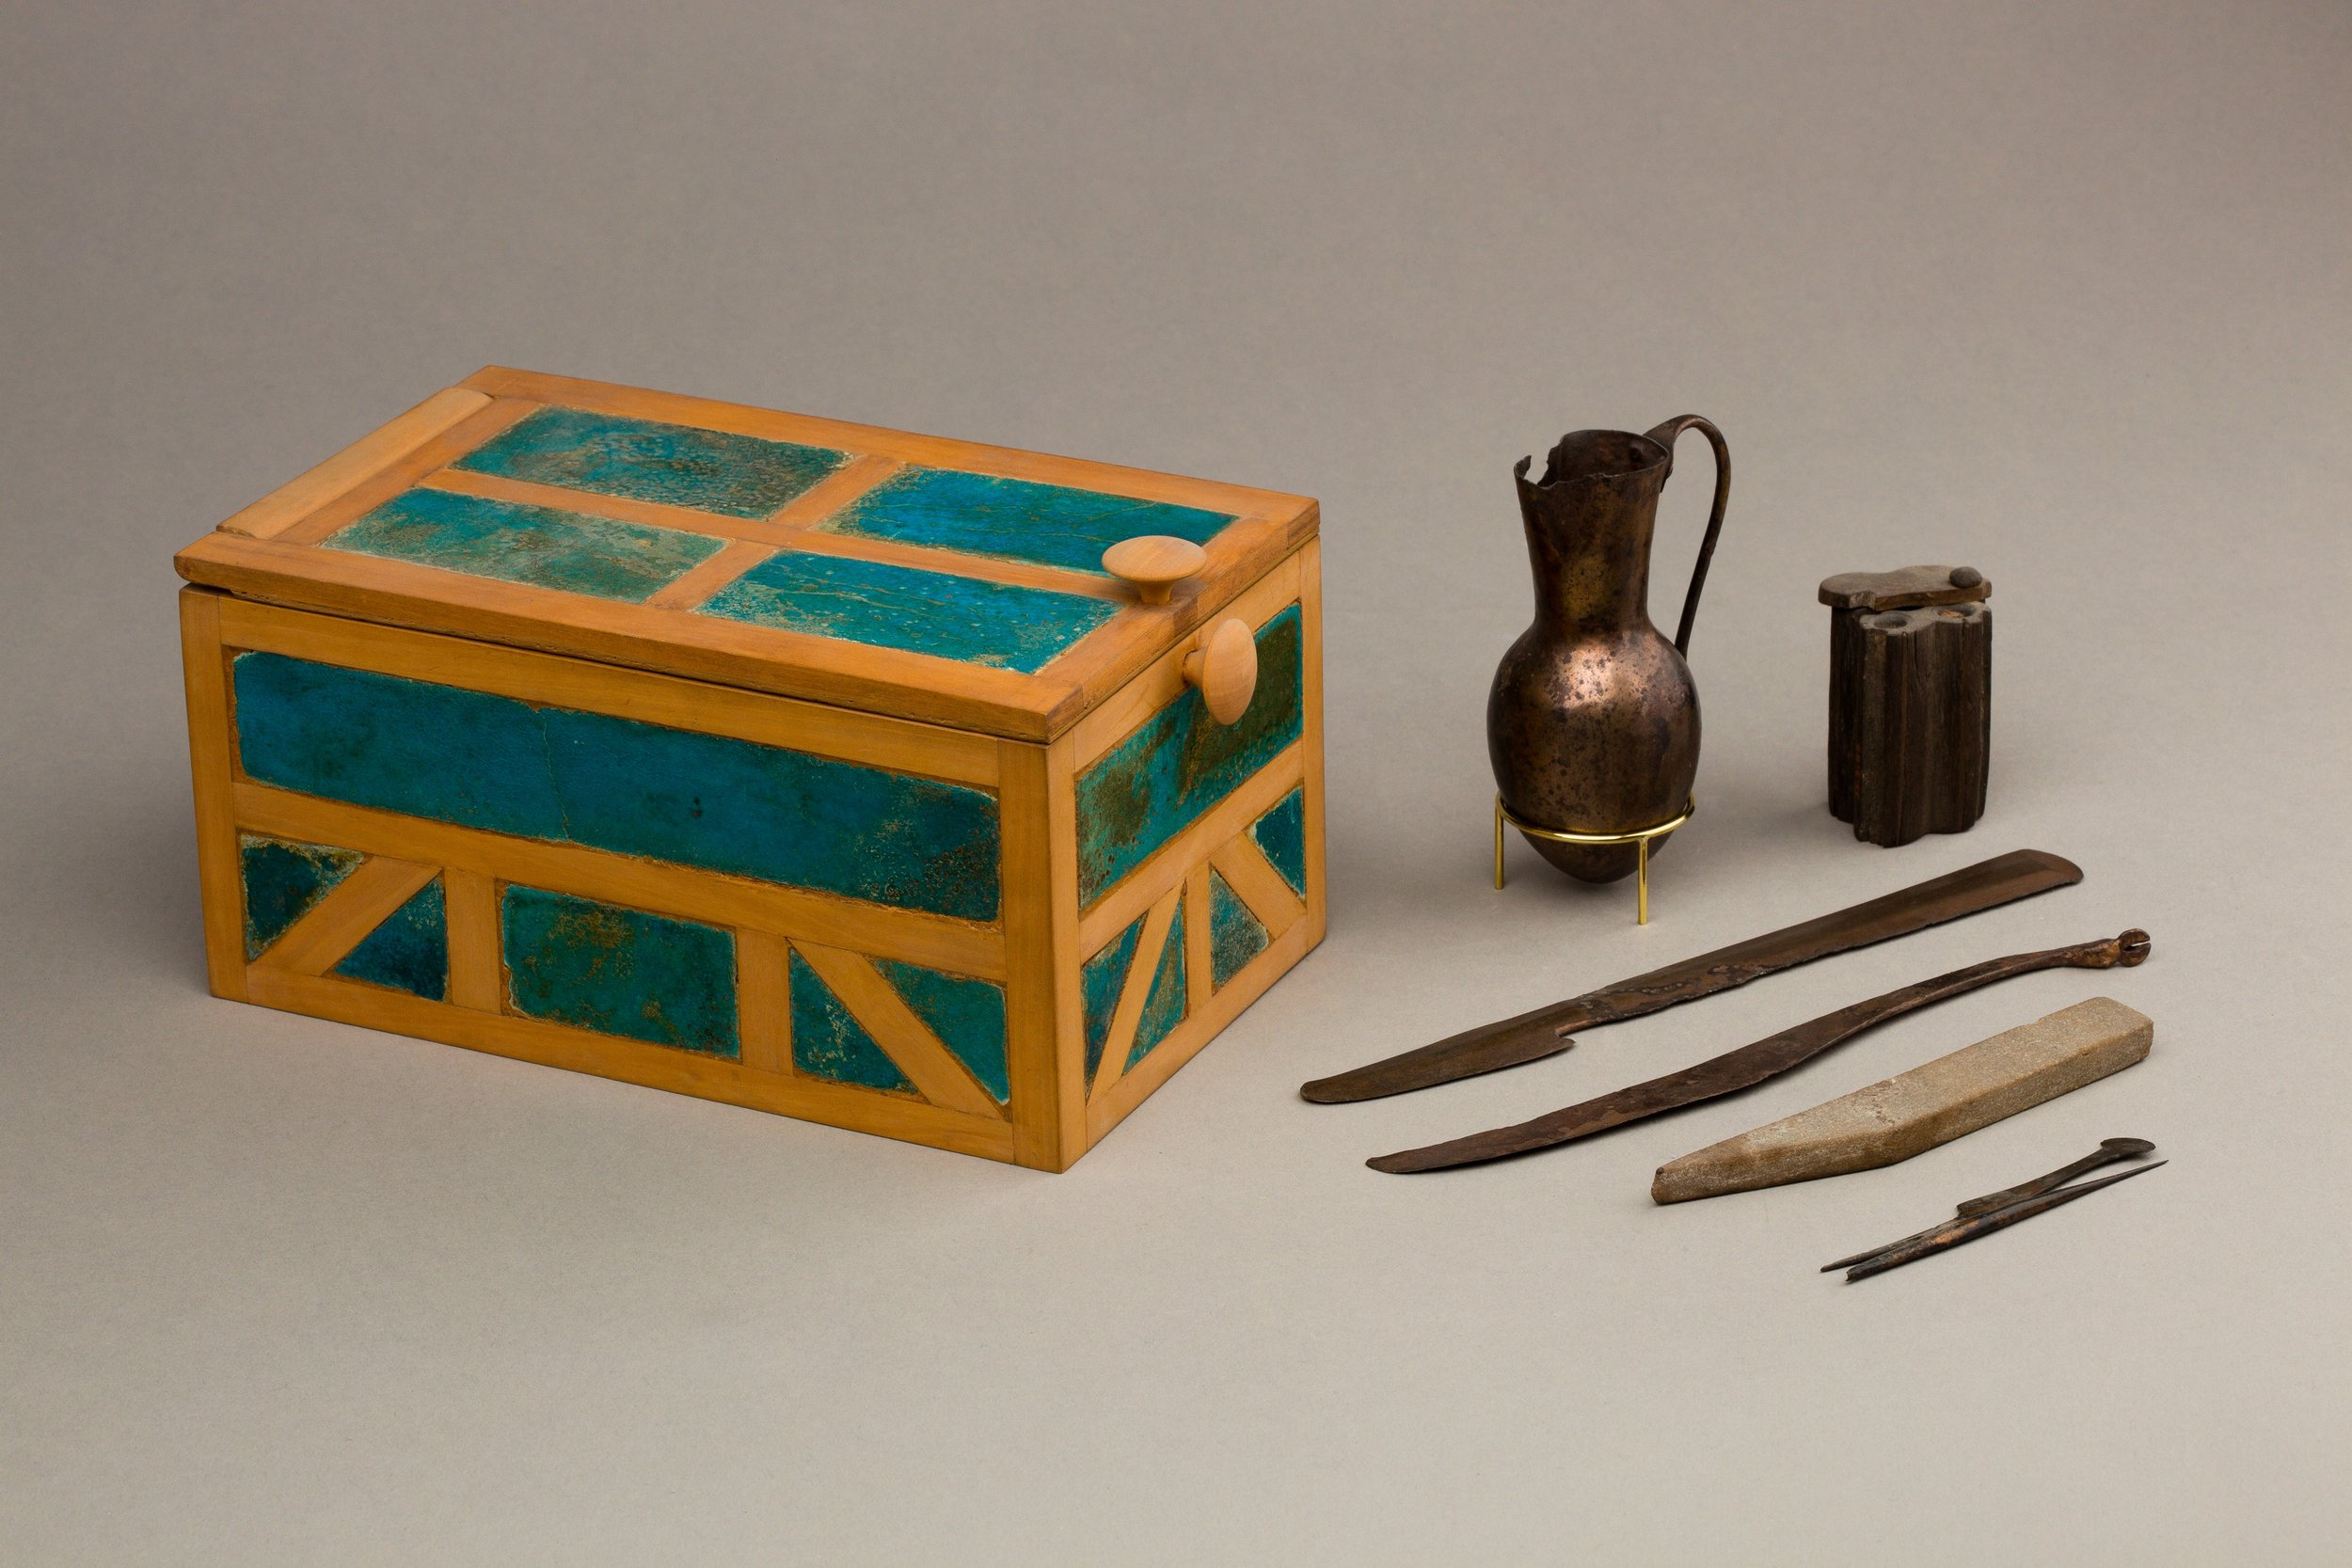 A fancy jewelry box circa 1504–1447 BCE and some nifty tools for putting makeup on with. The ancient Egyptians knew how to get all done up.   Courtesy of the Metropolitan Museum of Art